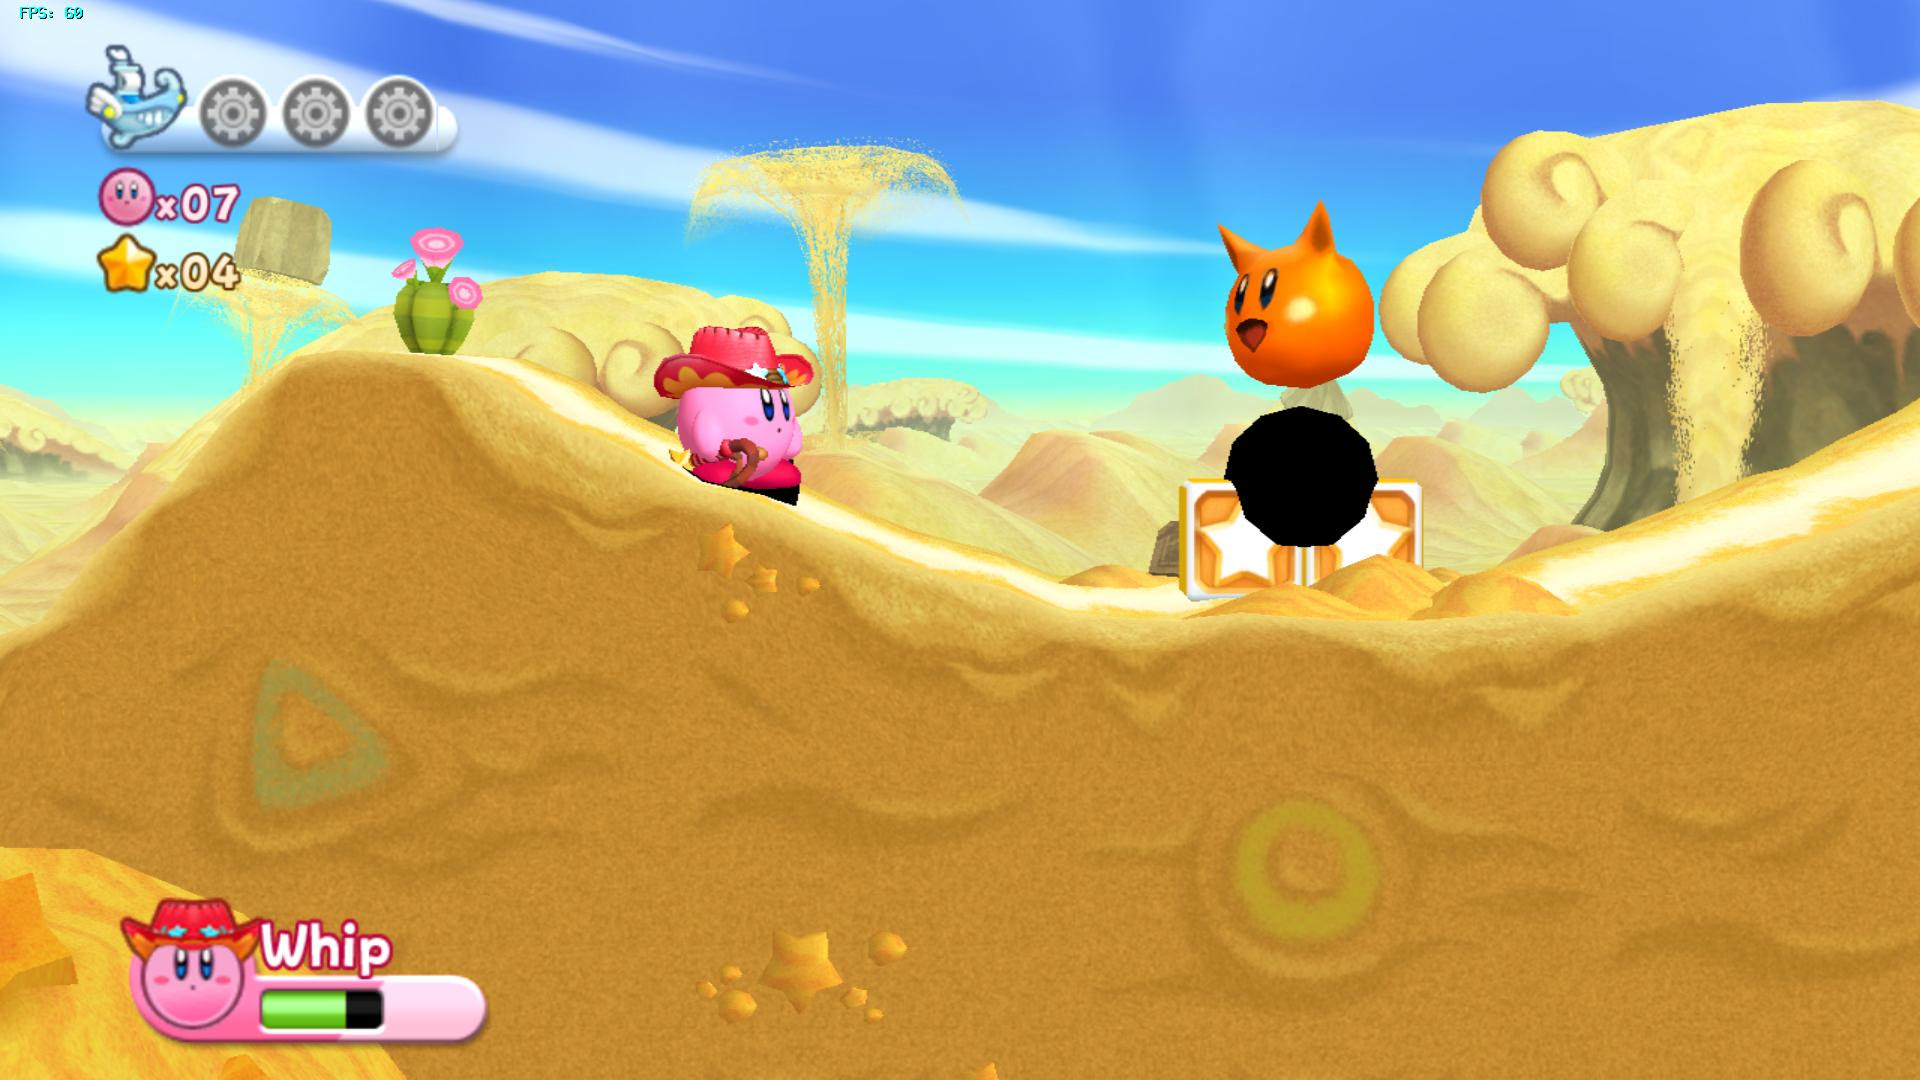 Dolphin The Gamecube And Wii Emulator Forums Wii Kirby S